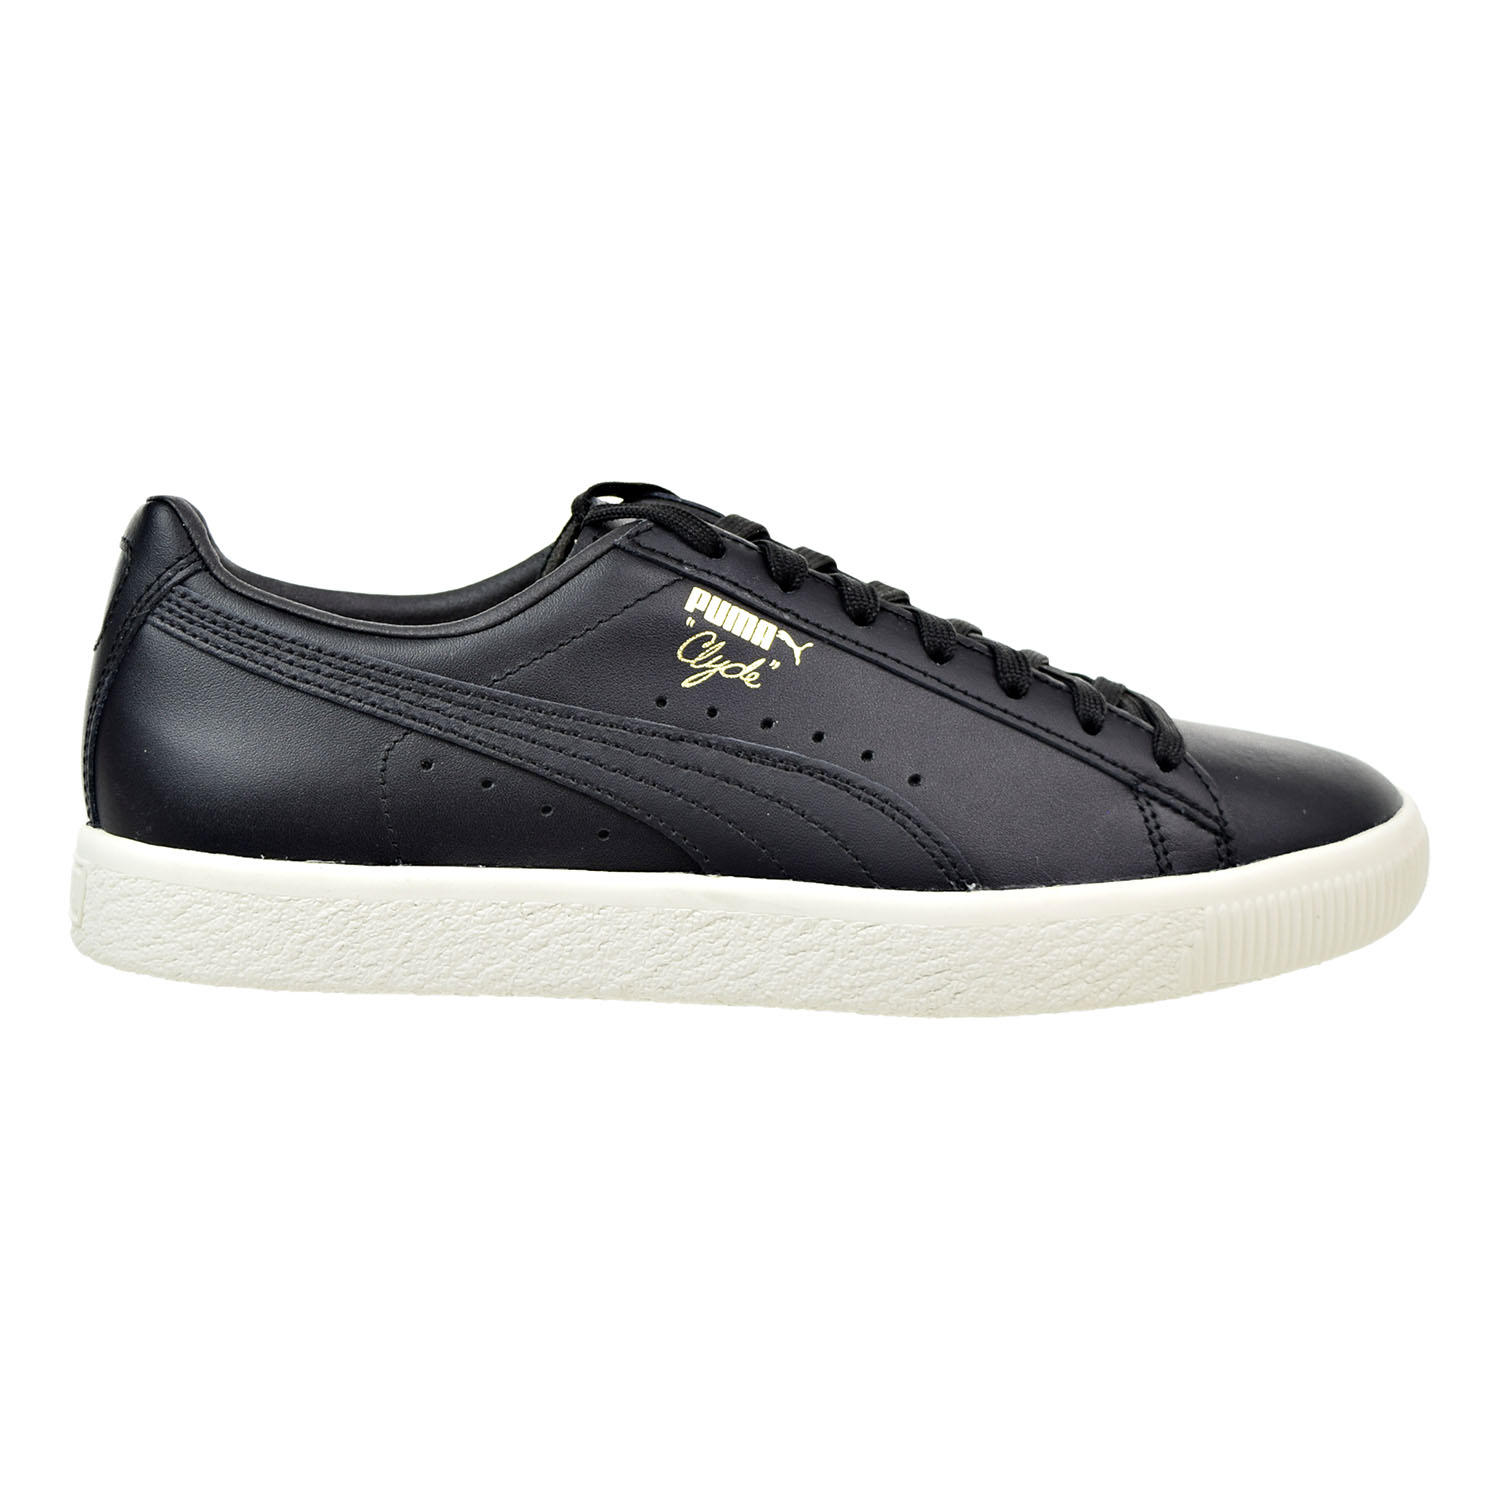 9249289ff14 Puma Clyde Natural Star Men s Shoe Puma Black 363617-01